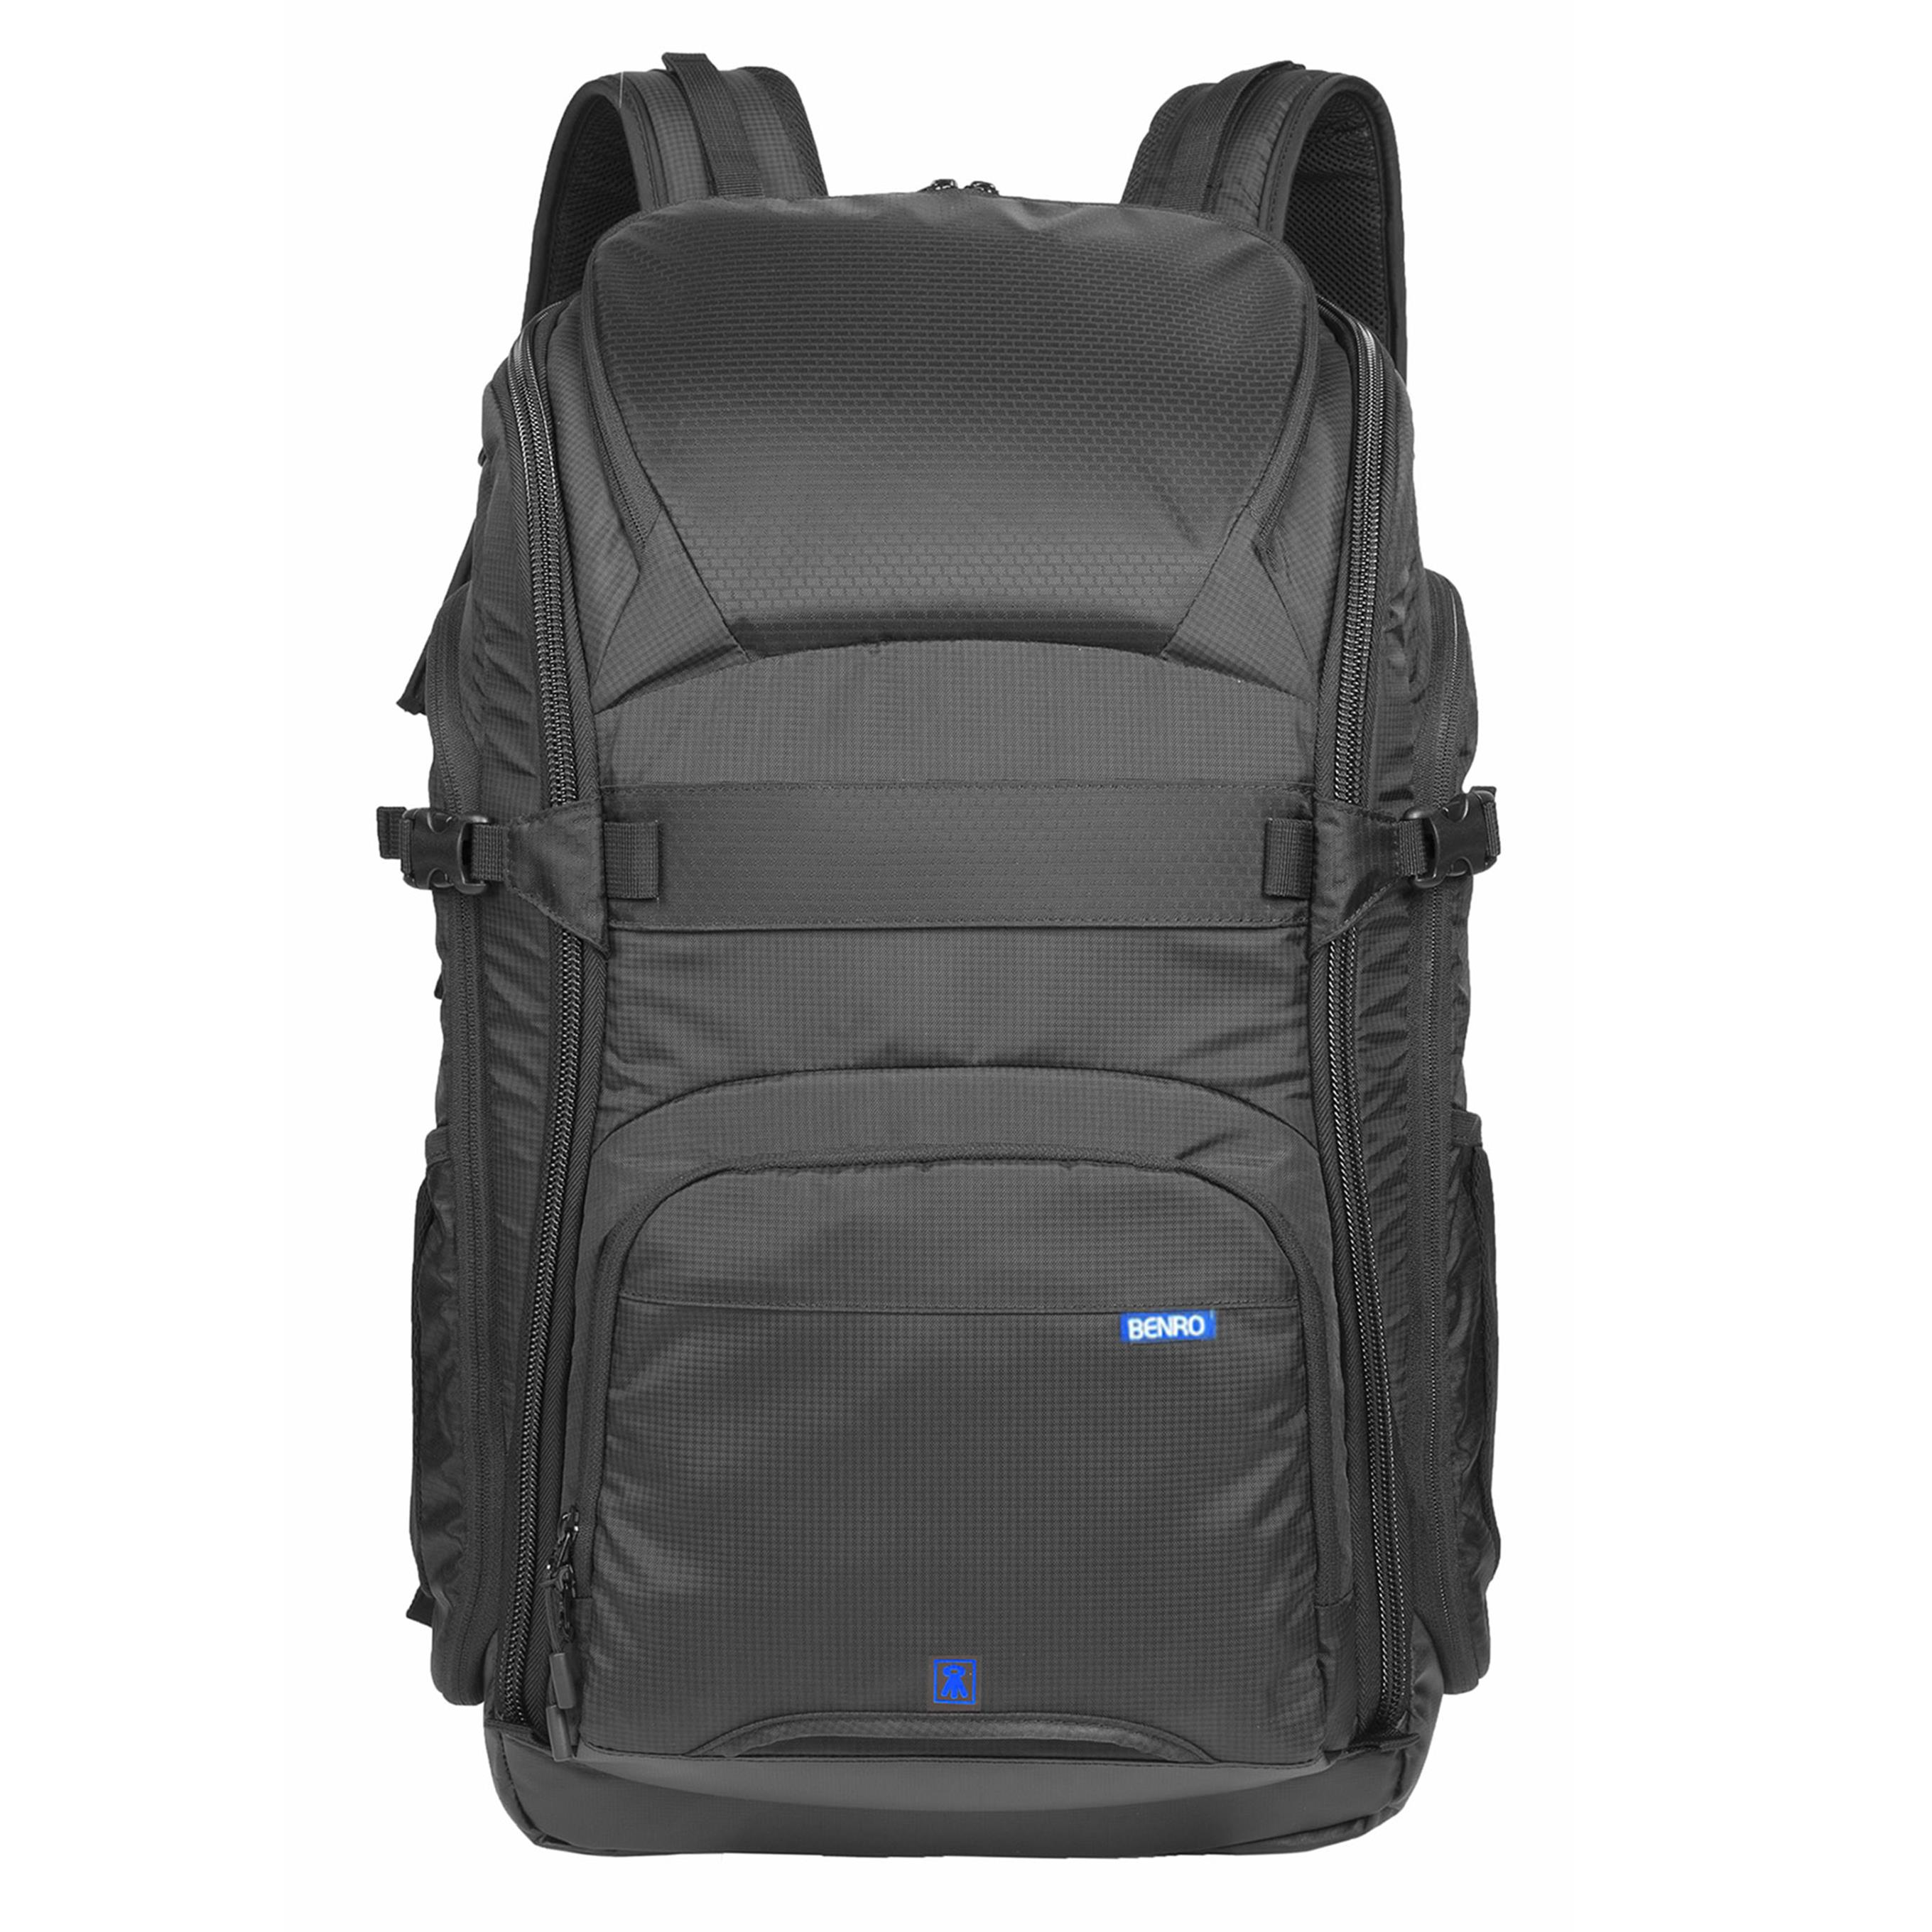 Benro Sherpa 800N Backpack